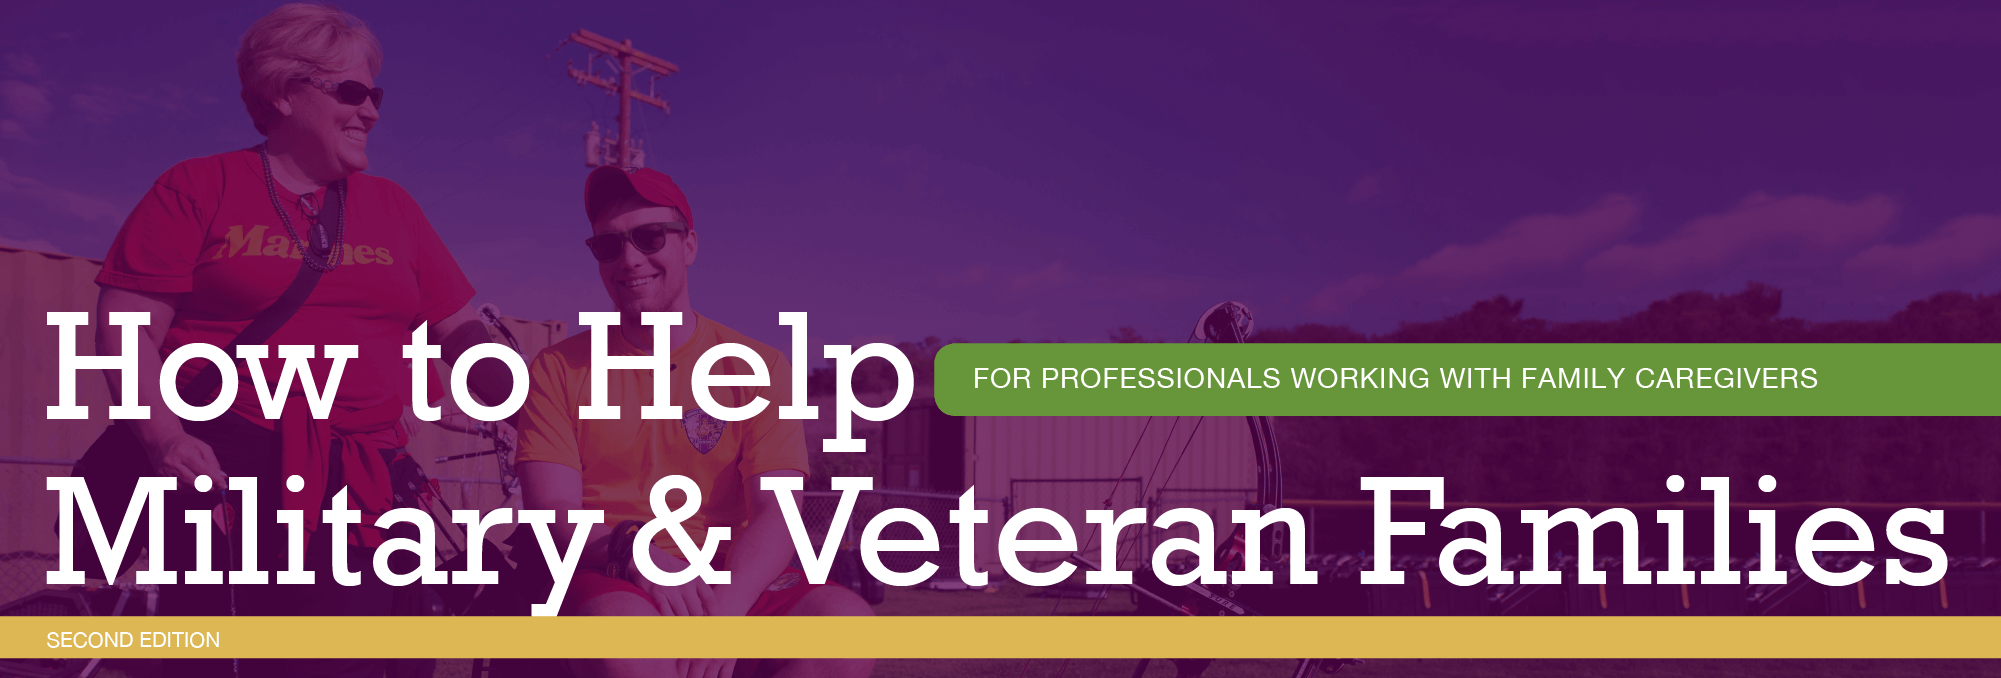 How to Help Military & Veteran Families for Professionals Working with Family Caregivers